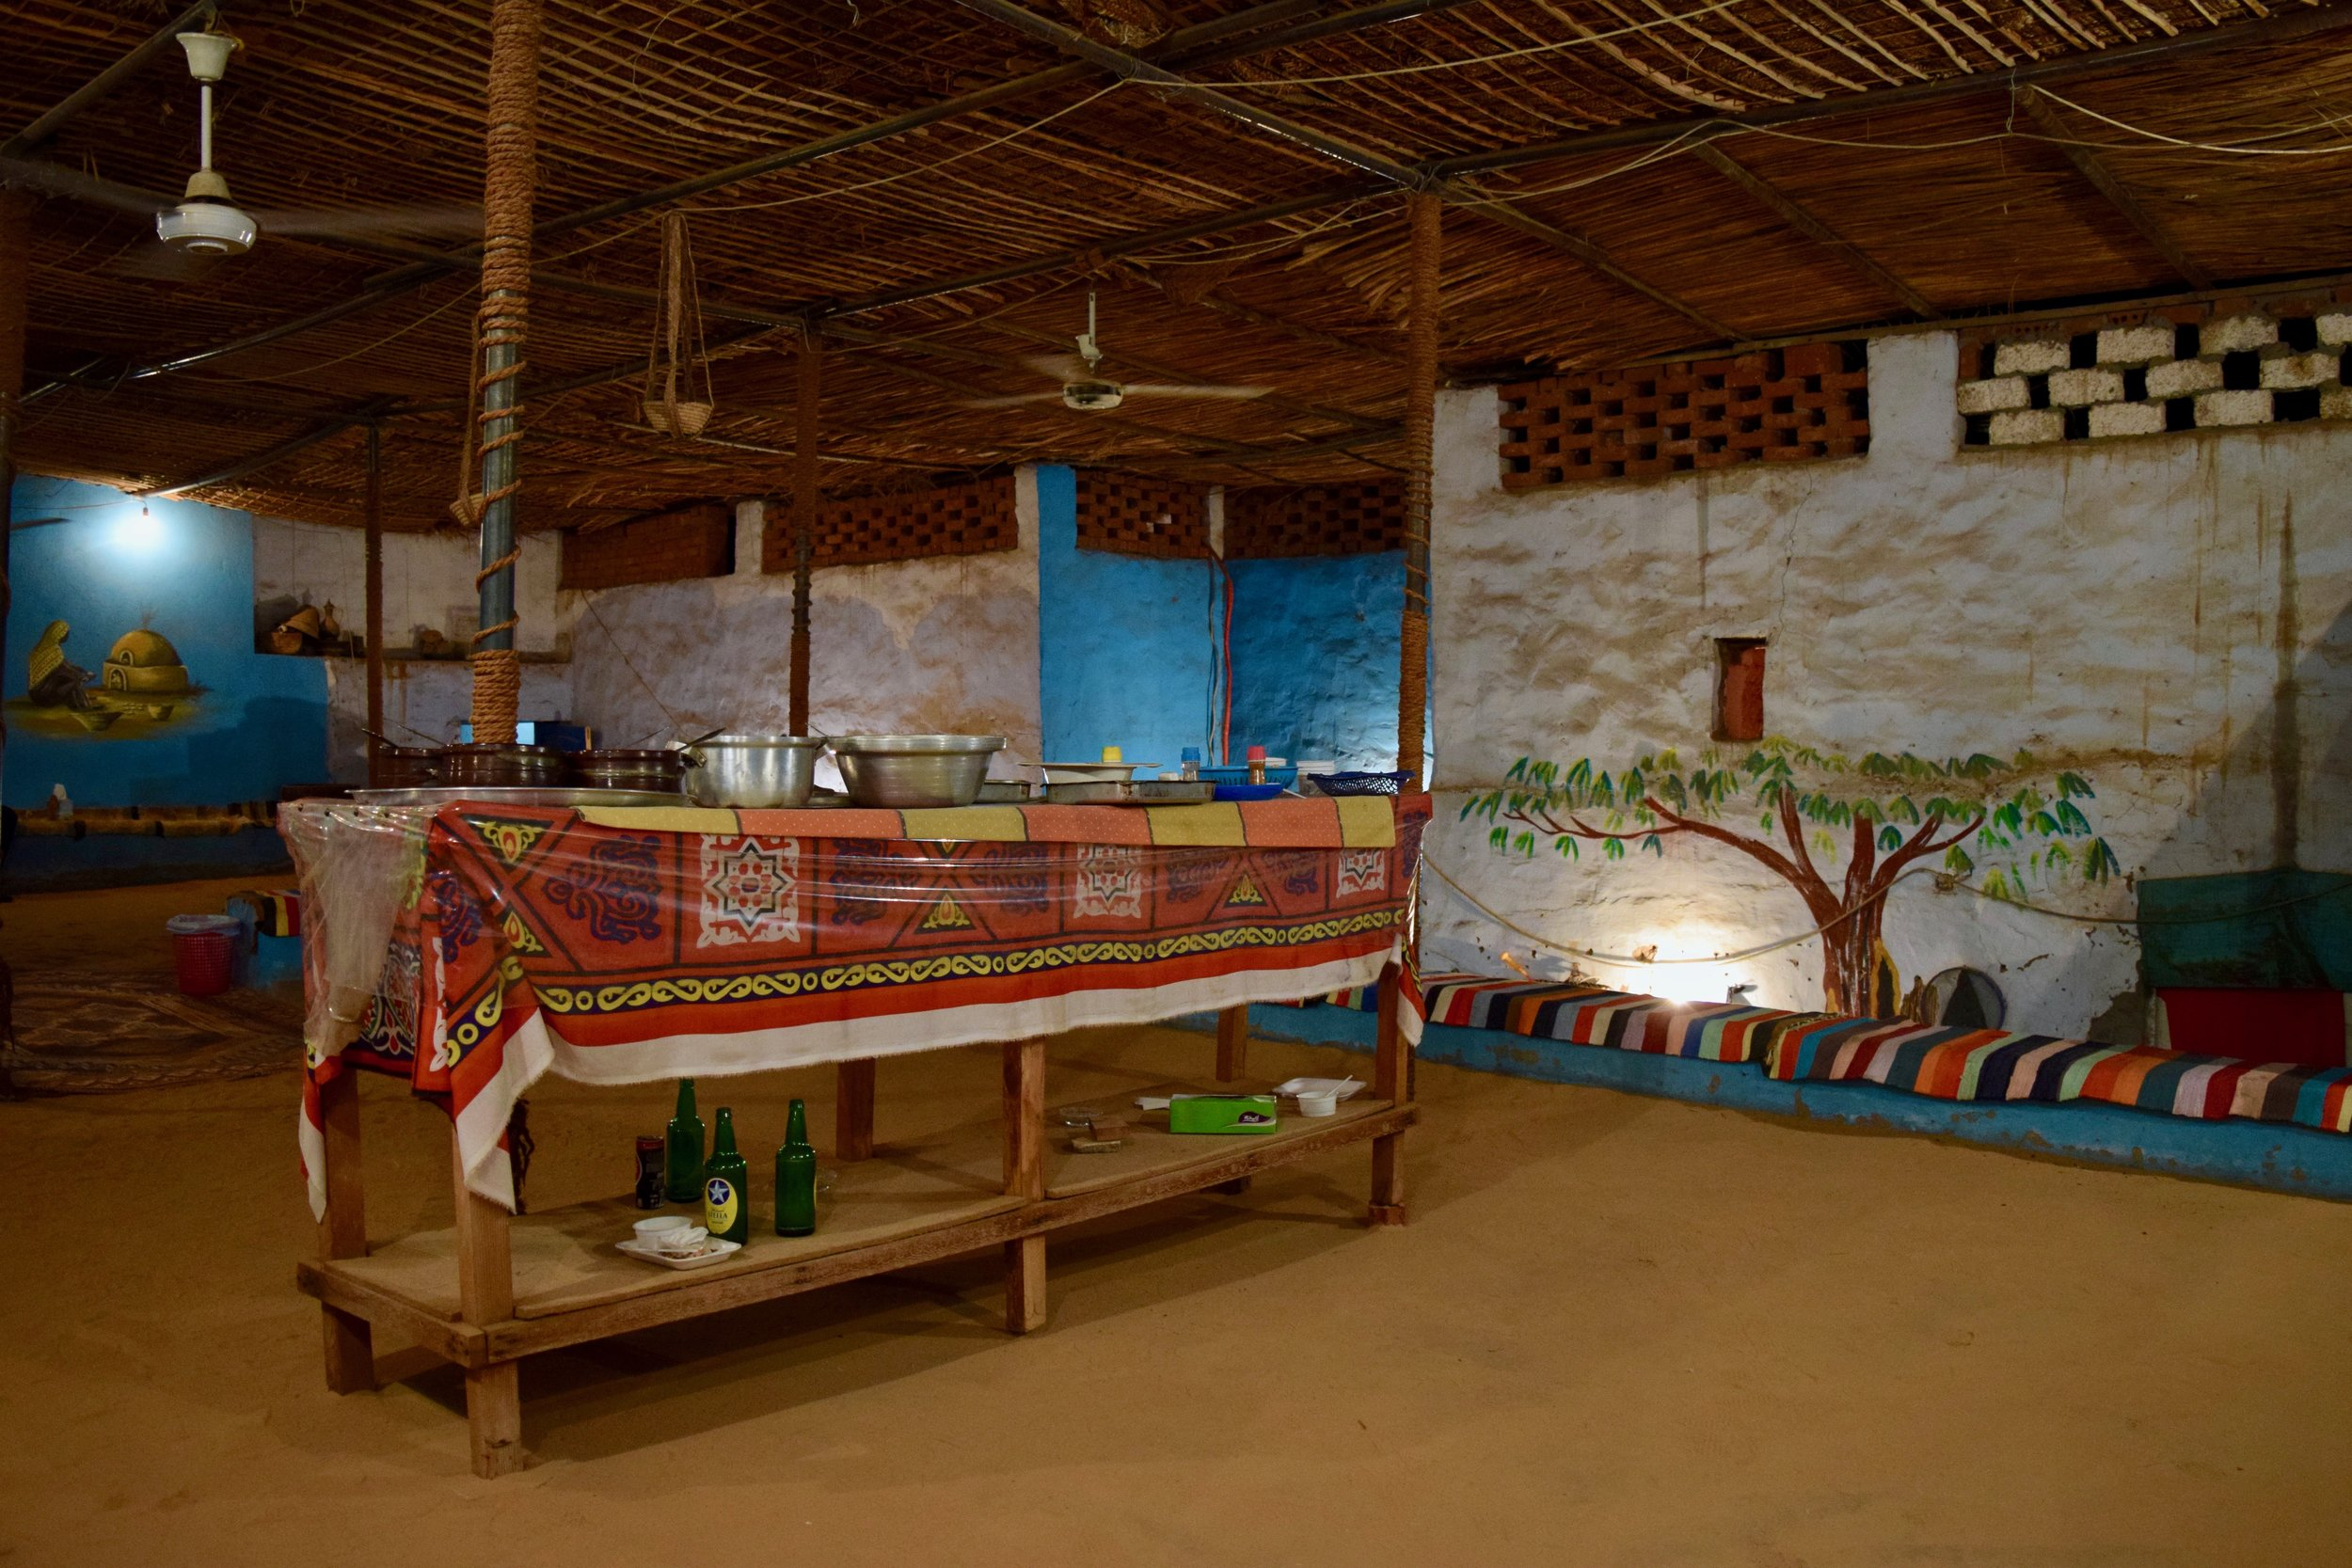 Nubian dinner in a traditional house